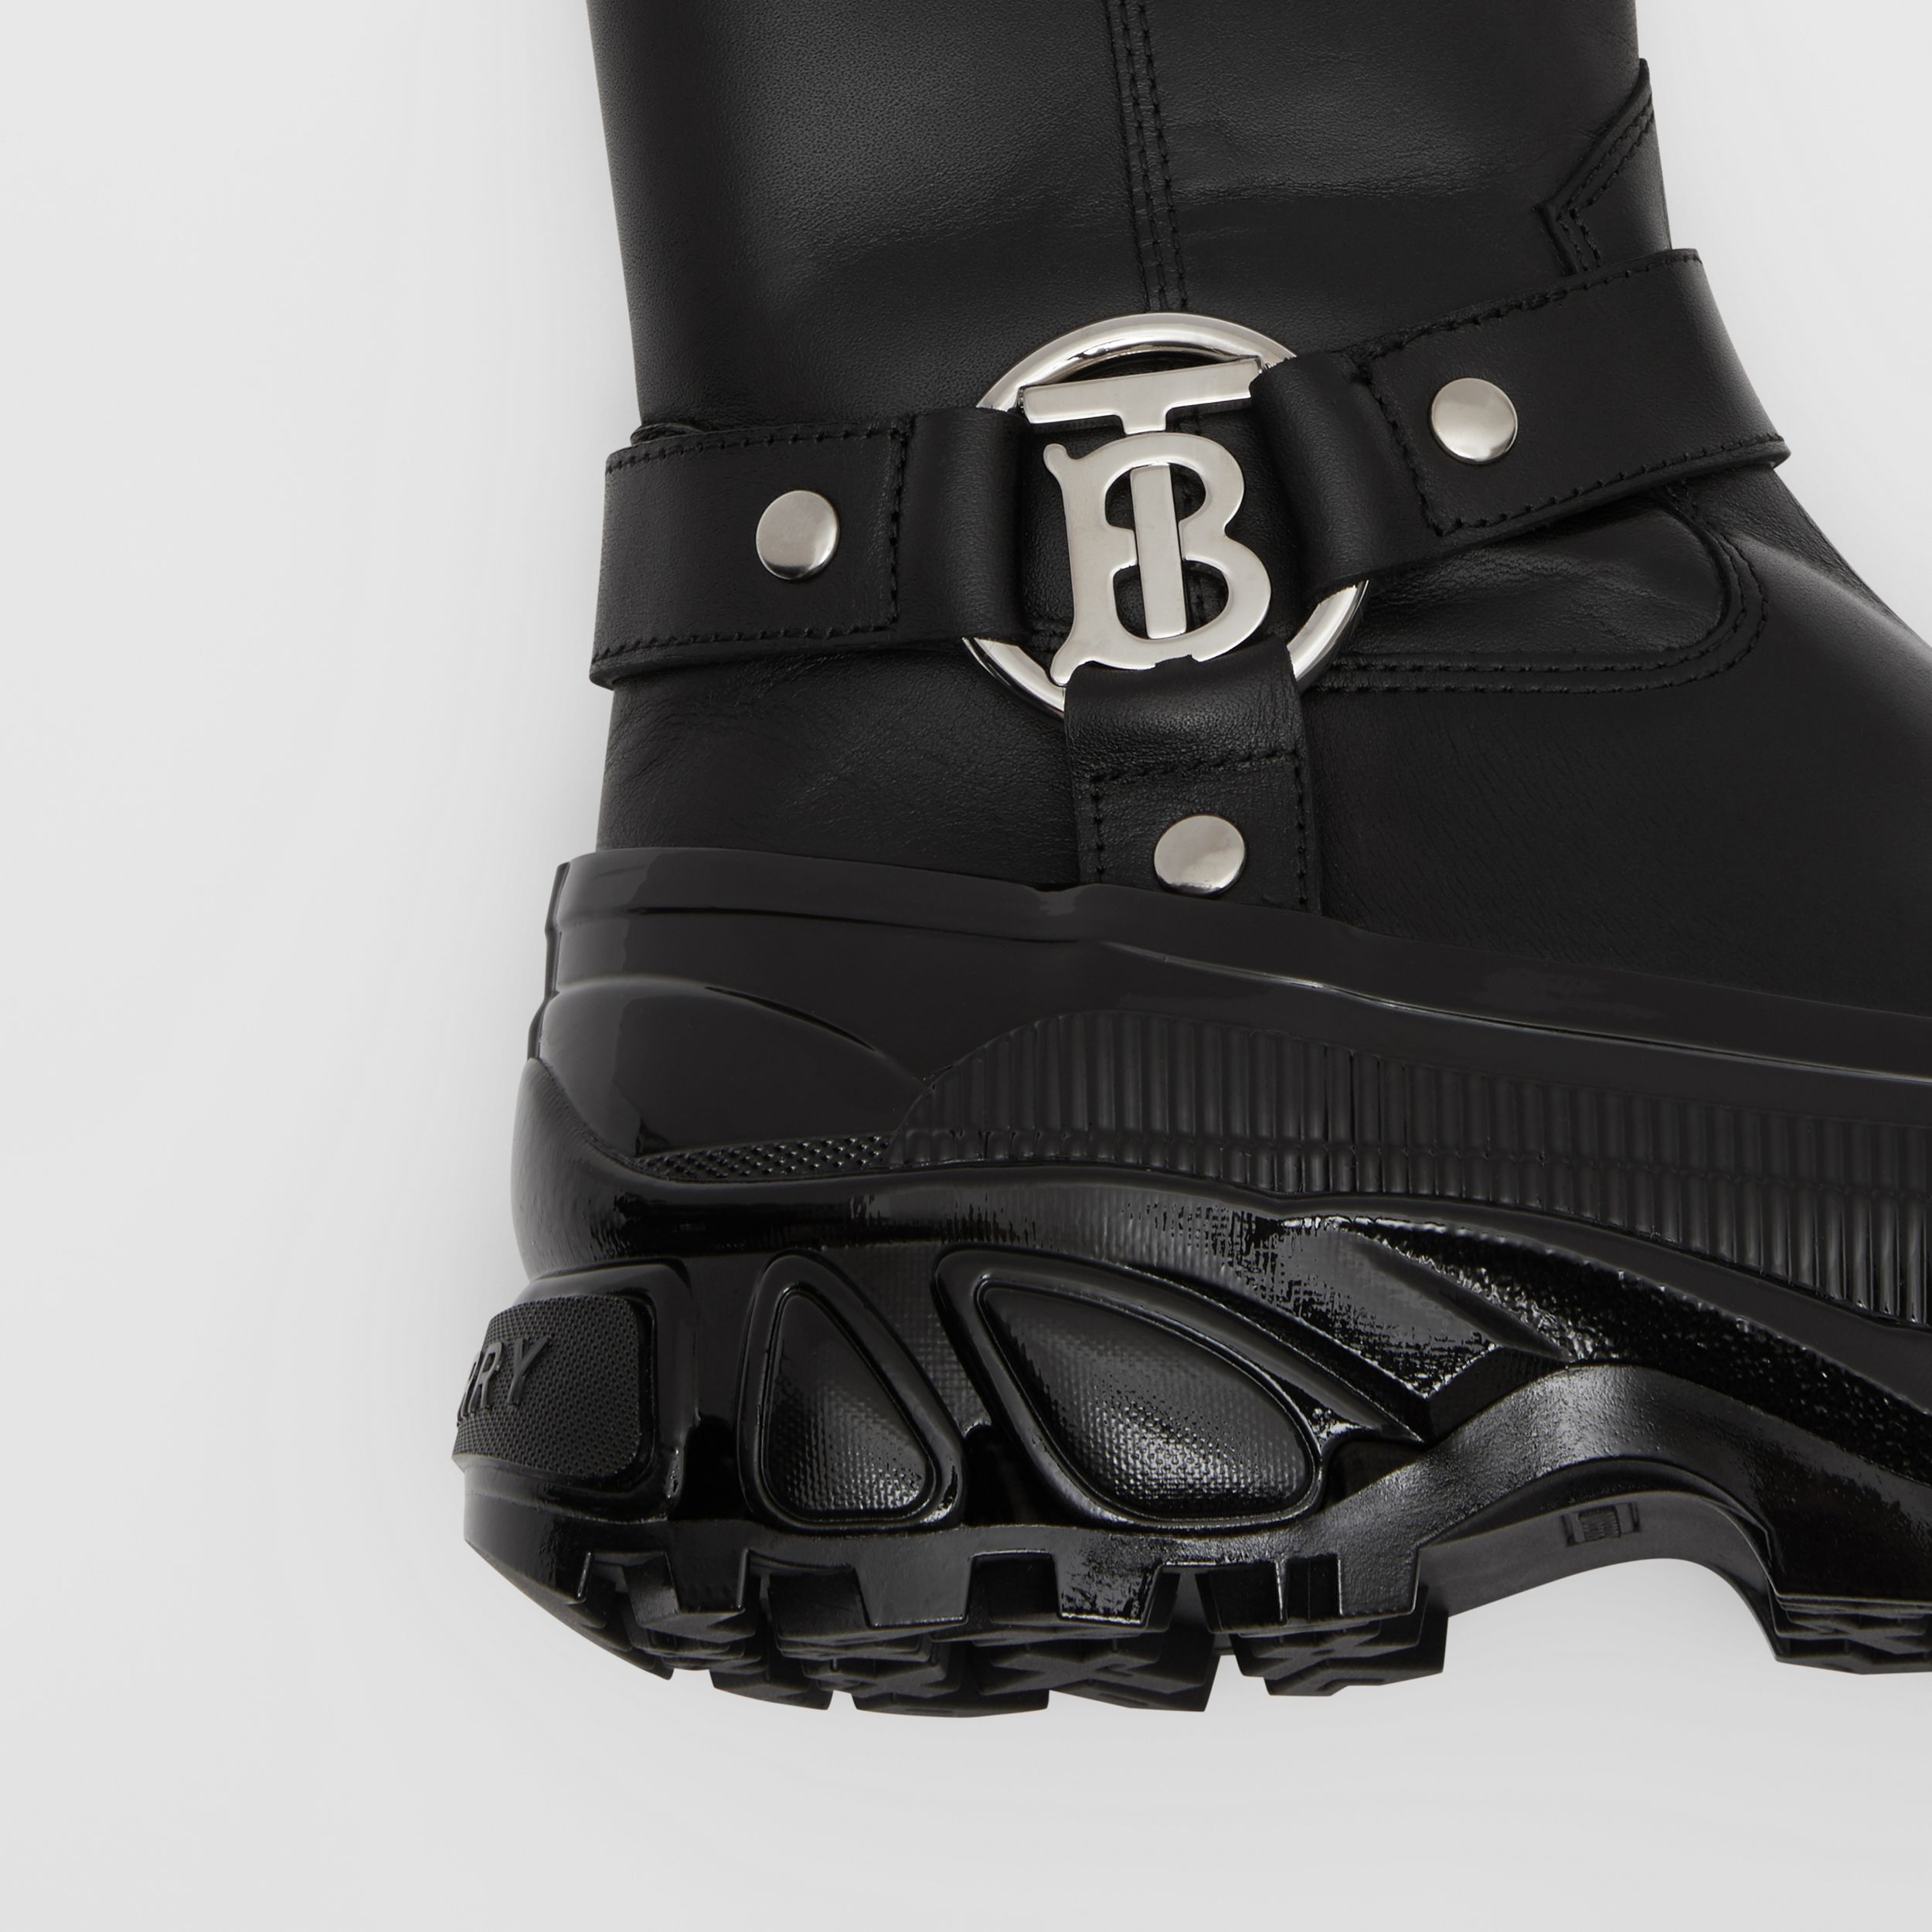 Monogram Motif Buckle Leather Boots in Black - Women | Burberry - 2